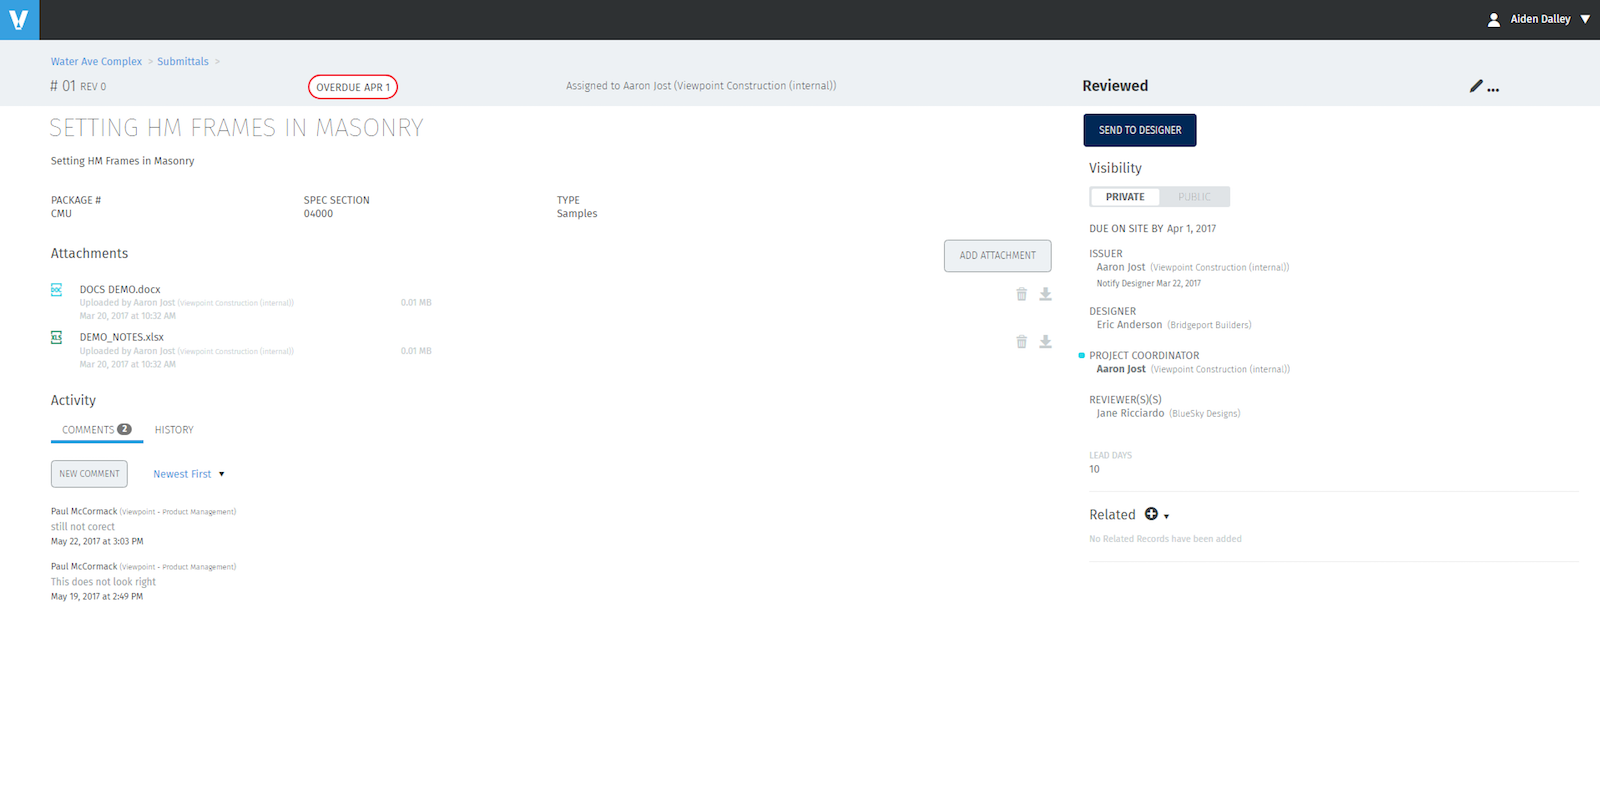 Secure and collaborative submittal workflows